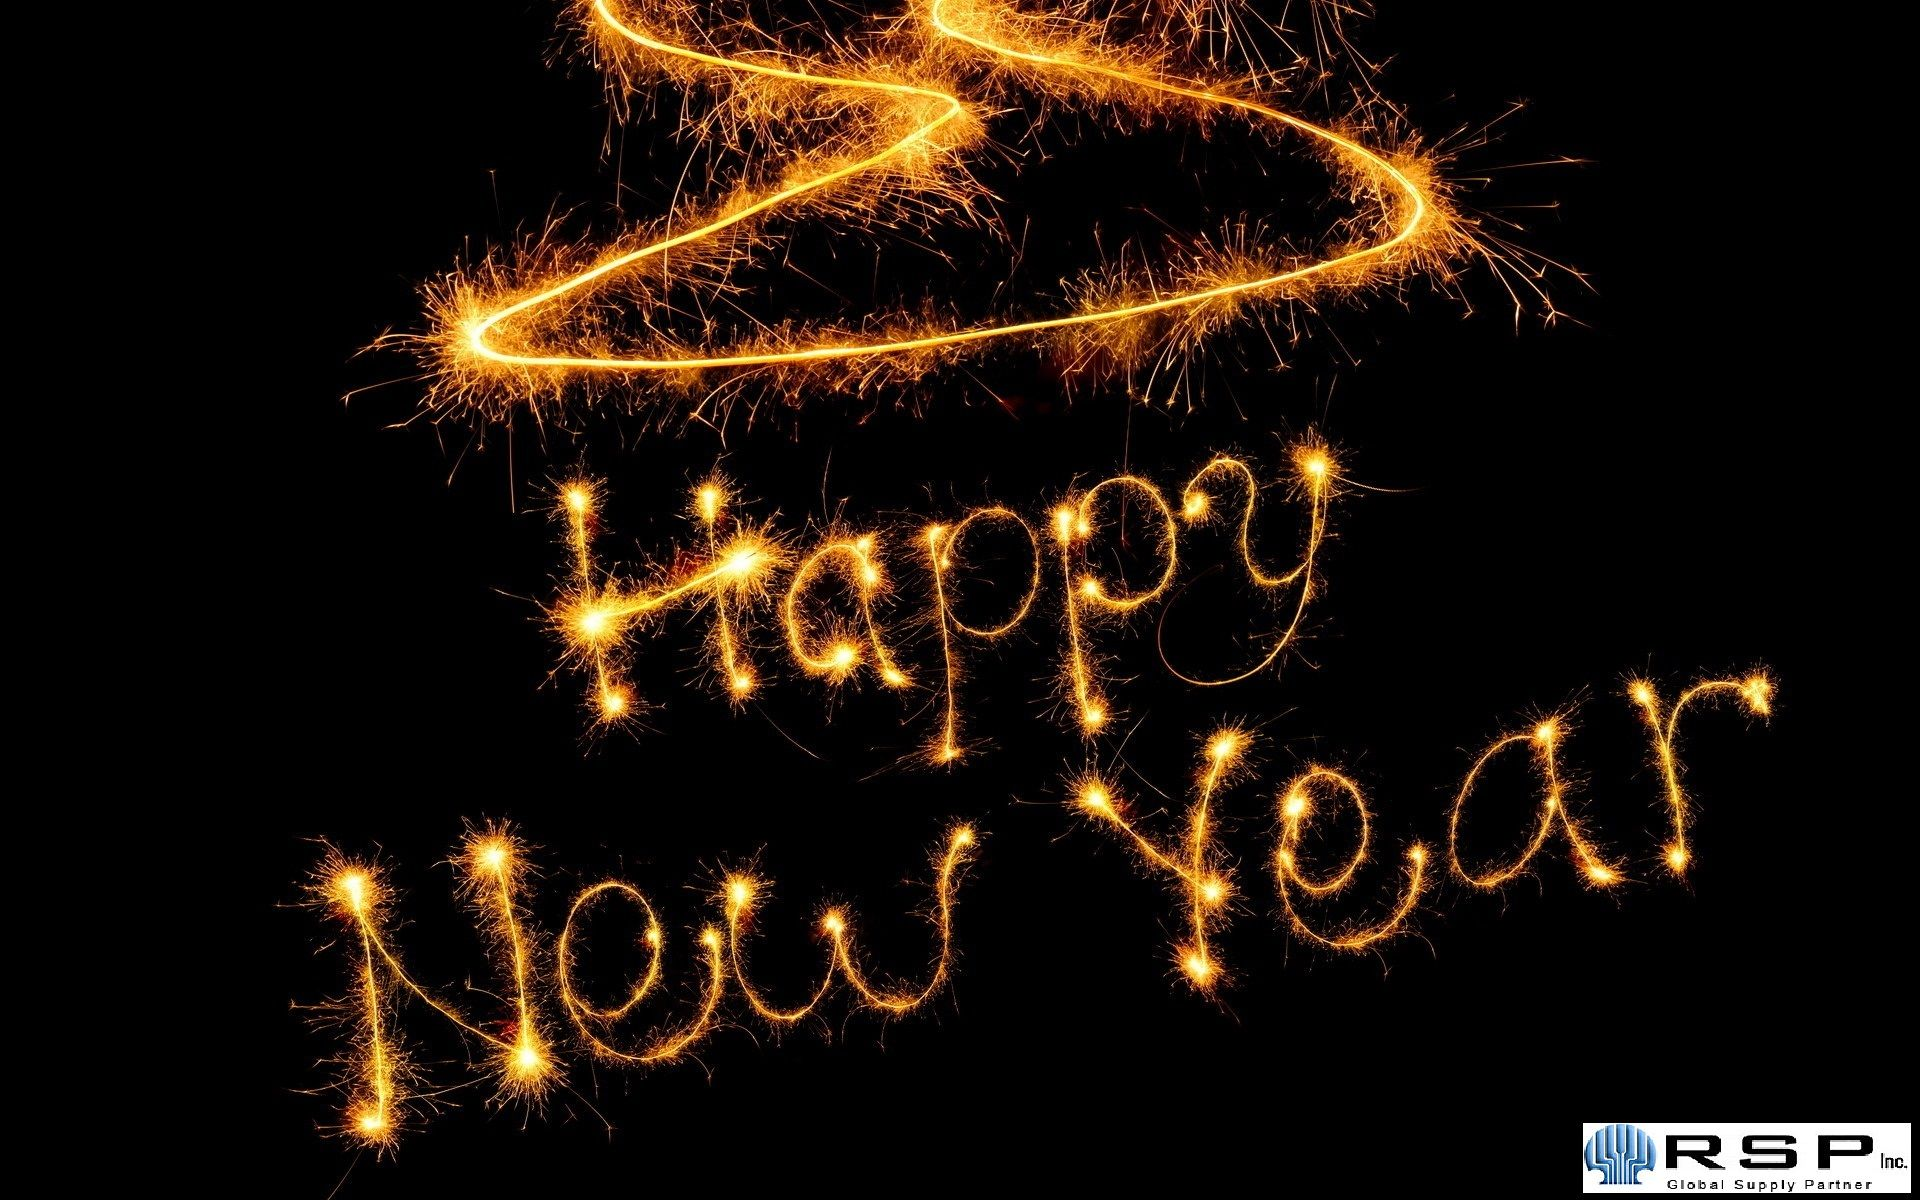 Many many happy returns happy new year 2015 by httpwww get any happy new year 2015 images in hd quality for your offline purpose like background of screen poster etc as you can wish to use in new year party kristyandbryce Gallery